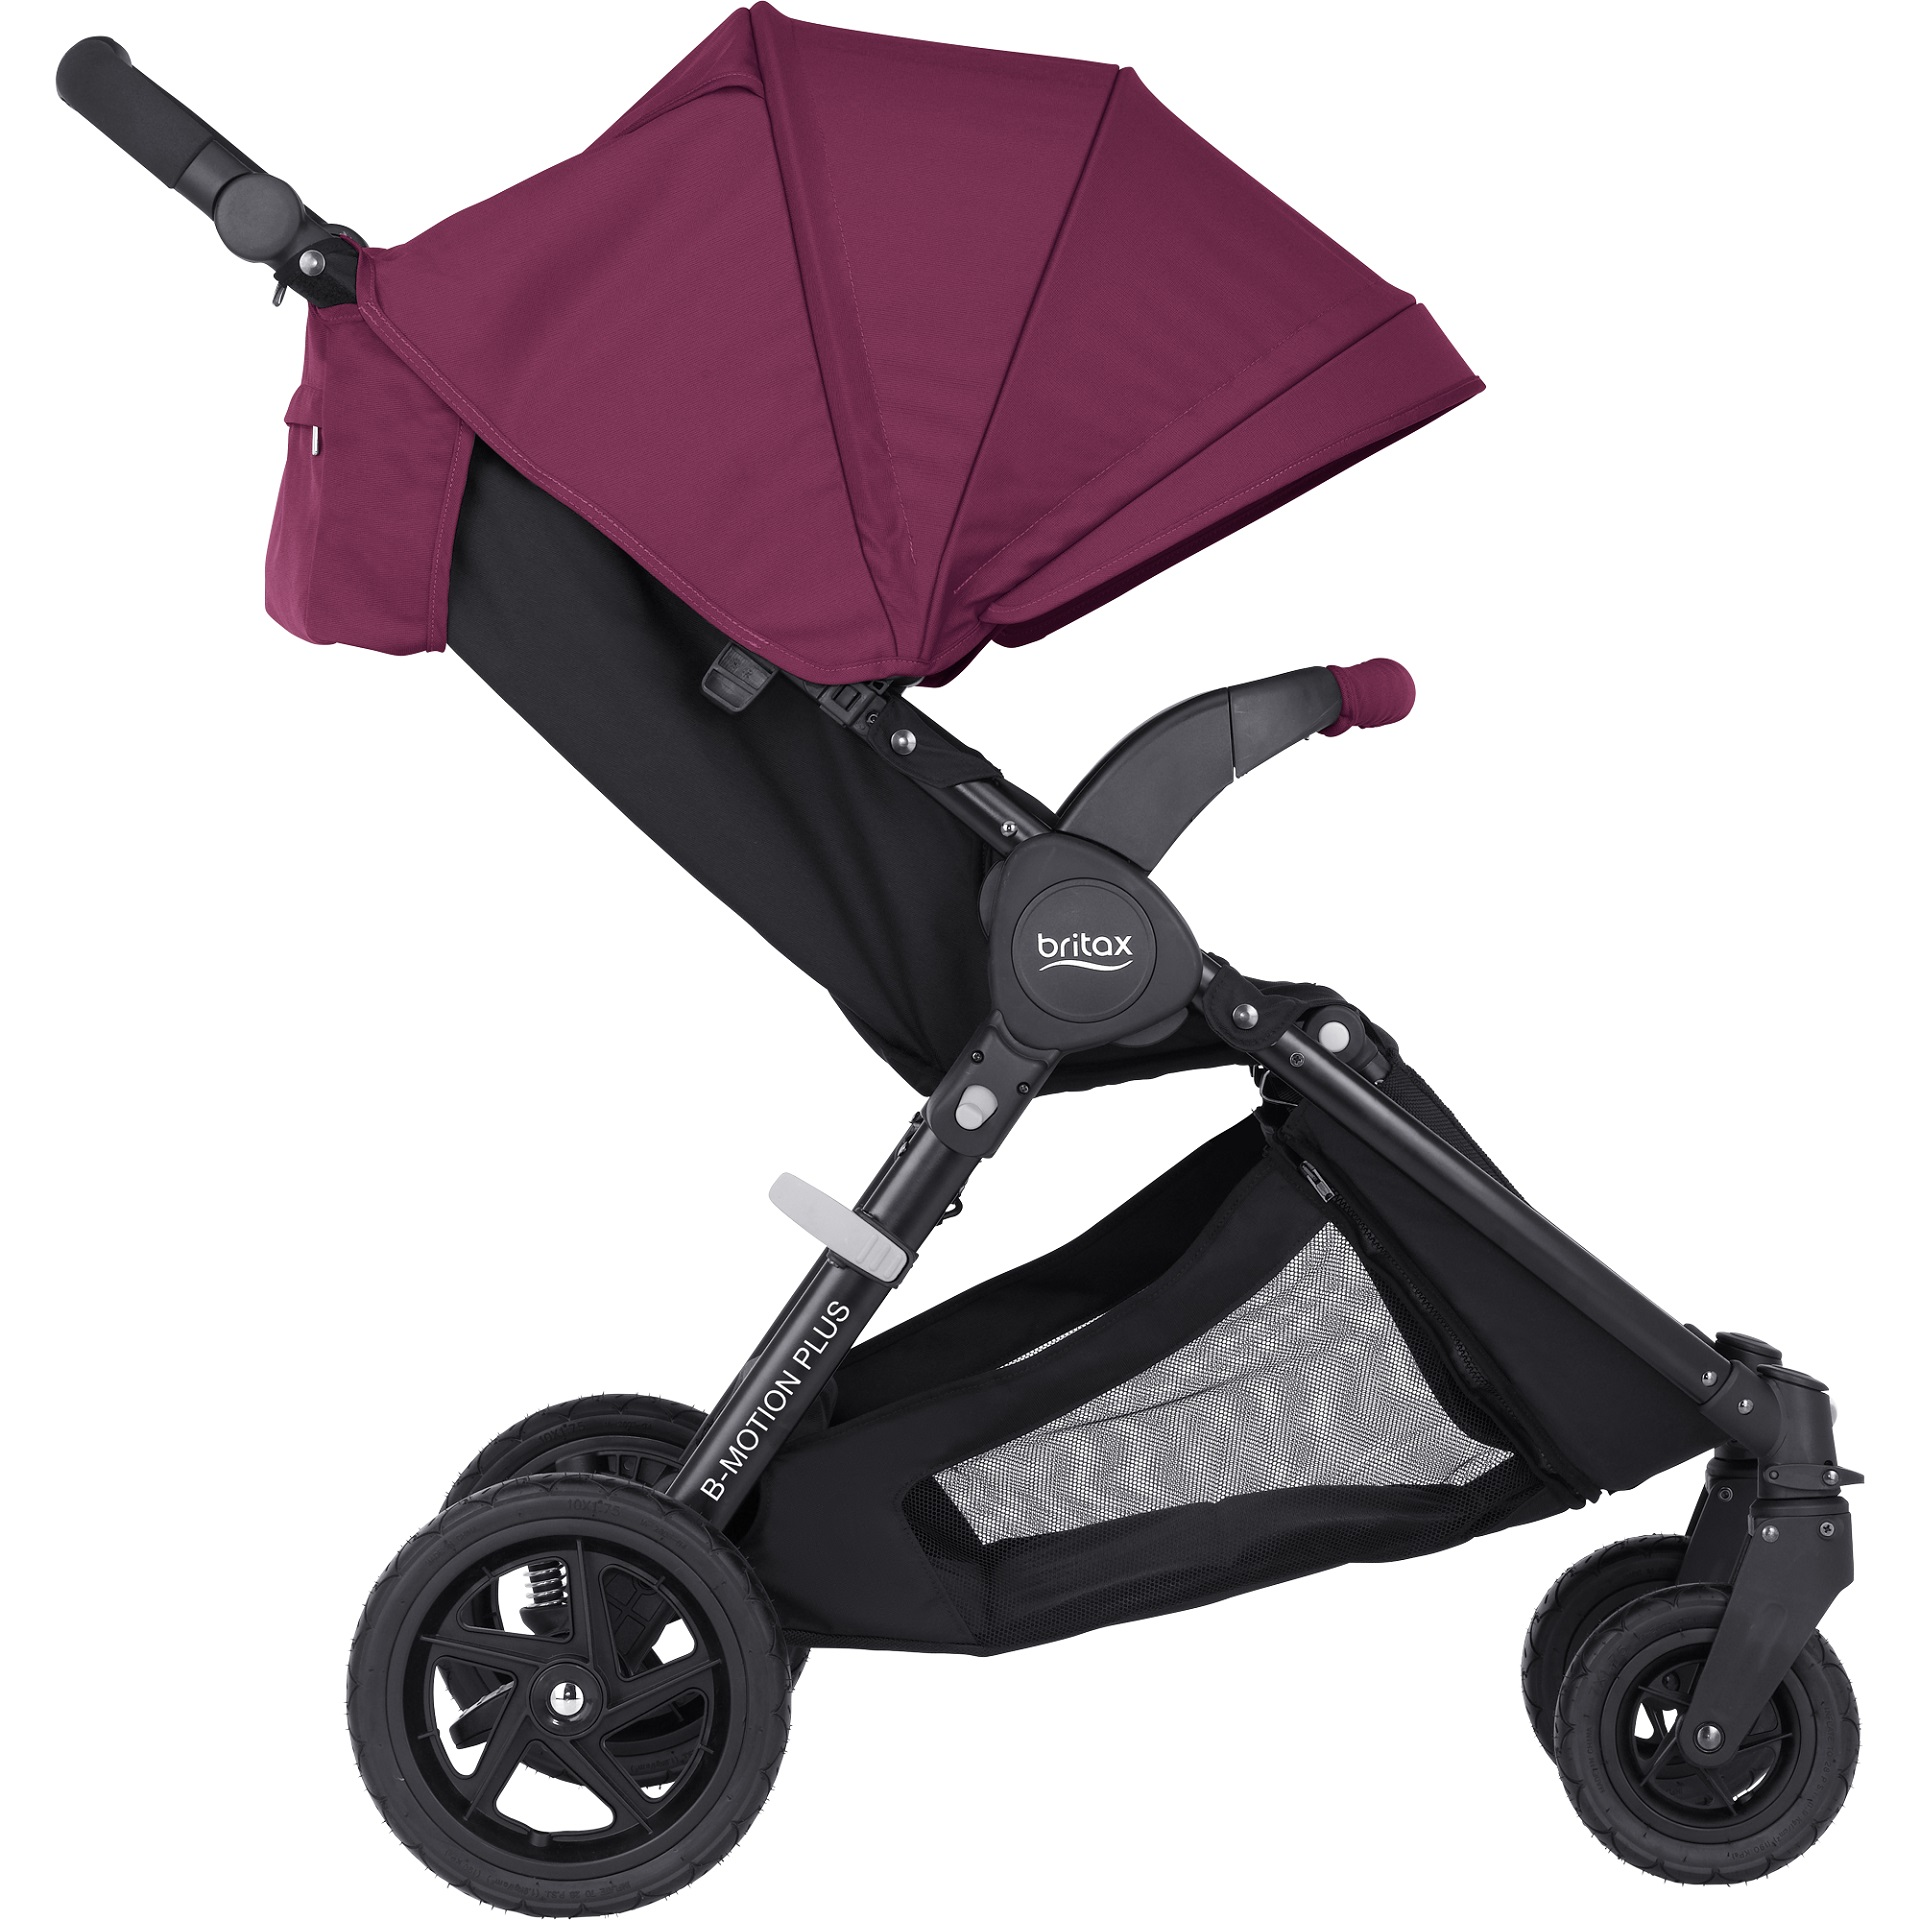 ... Britax B-Motion 4 Plus incl. Canopy Pack Wine Red 2018 - large image ...  sc 1 st  Baby products online store - worldwide shipping & Britax B-Motion 4 Plus incl. Canopy Pack - Buy at kidsroom | Strollers